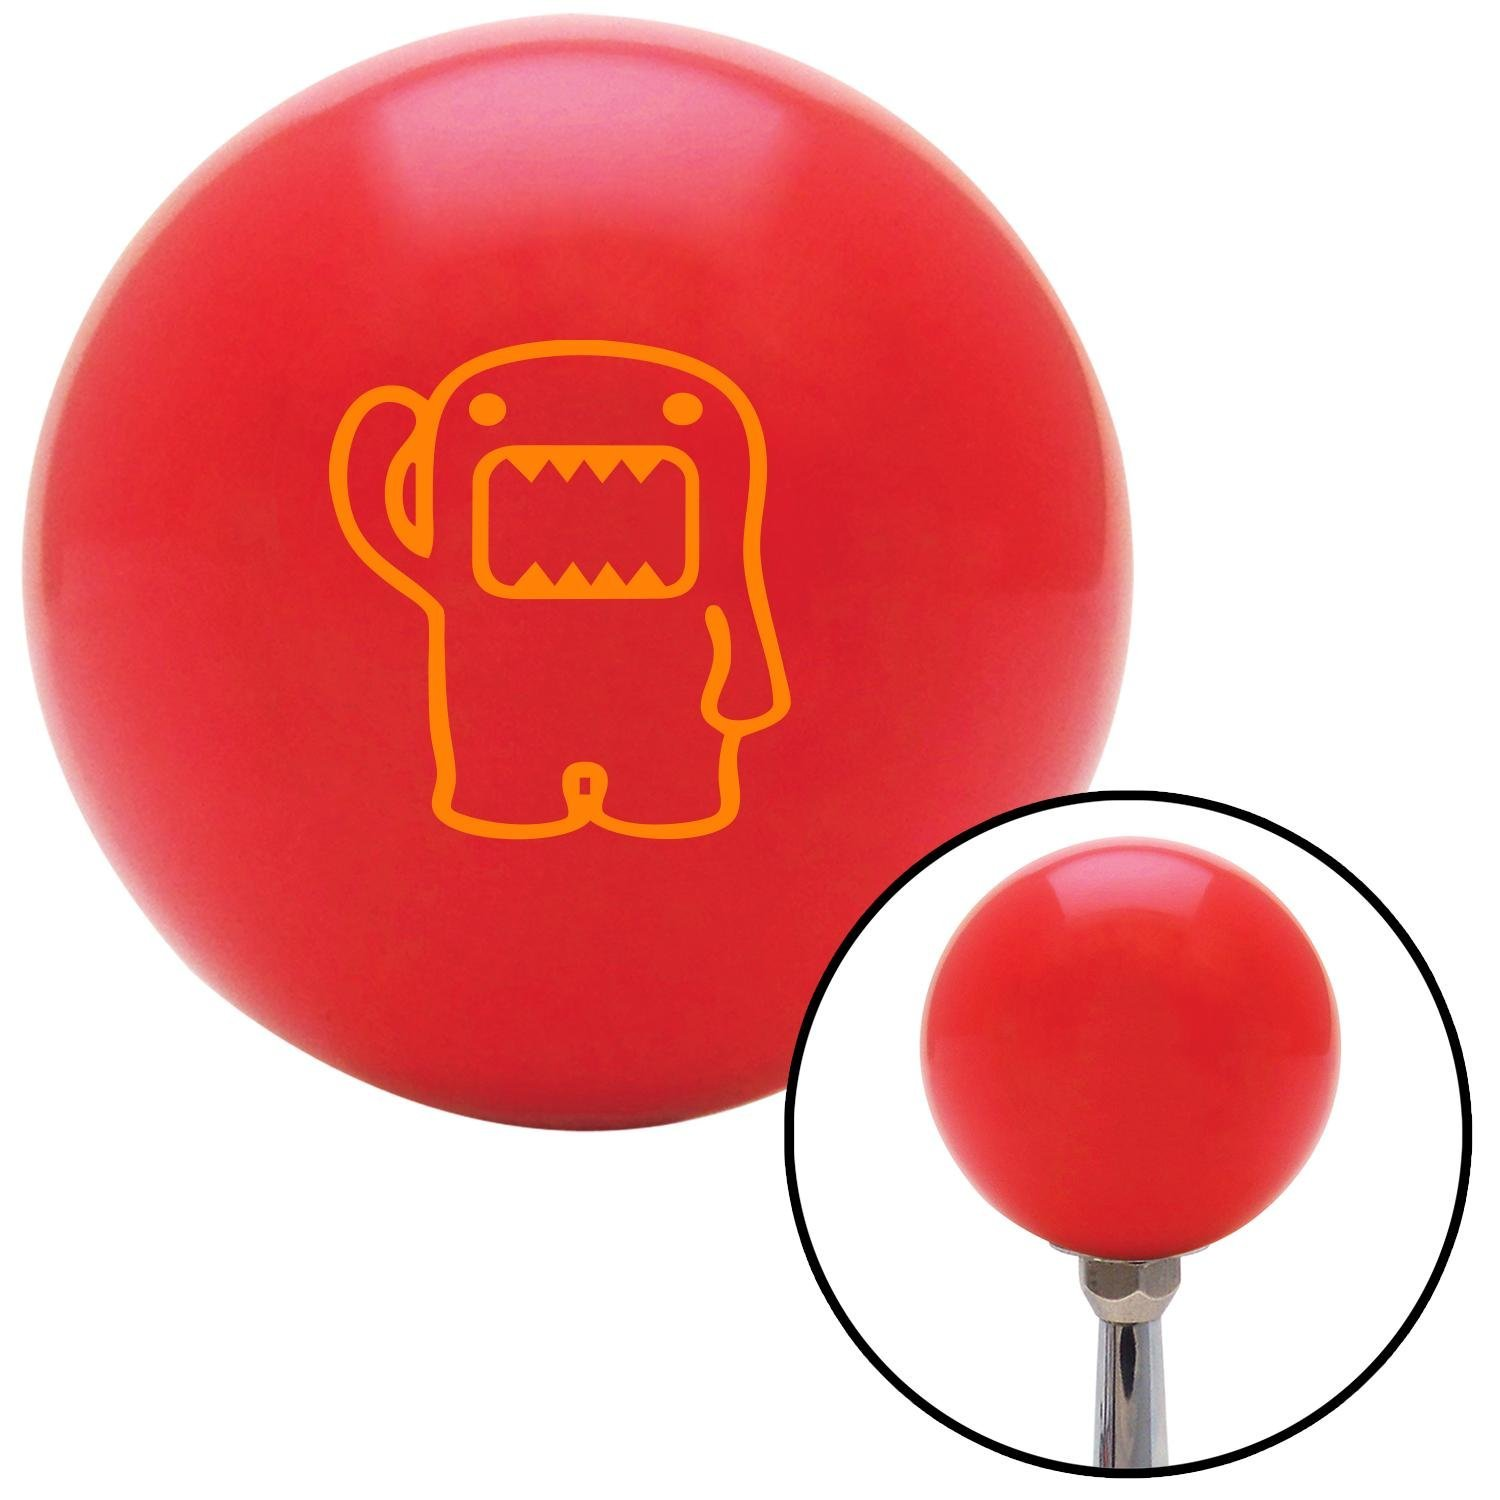 Orange Domo Classic American Shifter 94961 Red Shift Knob with M16 x 1.5 Insert